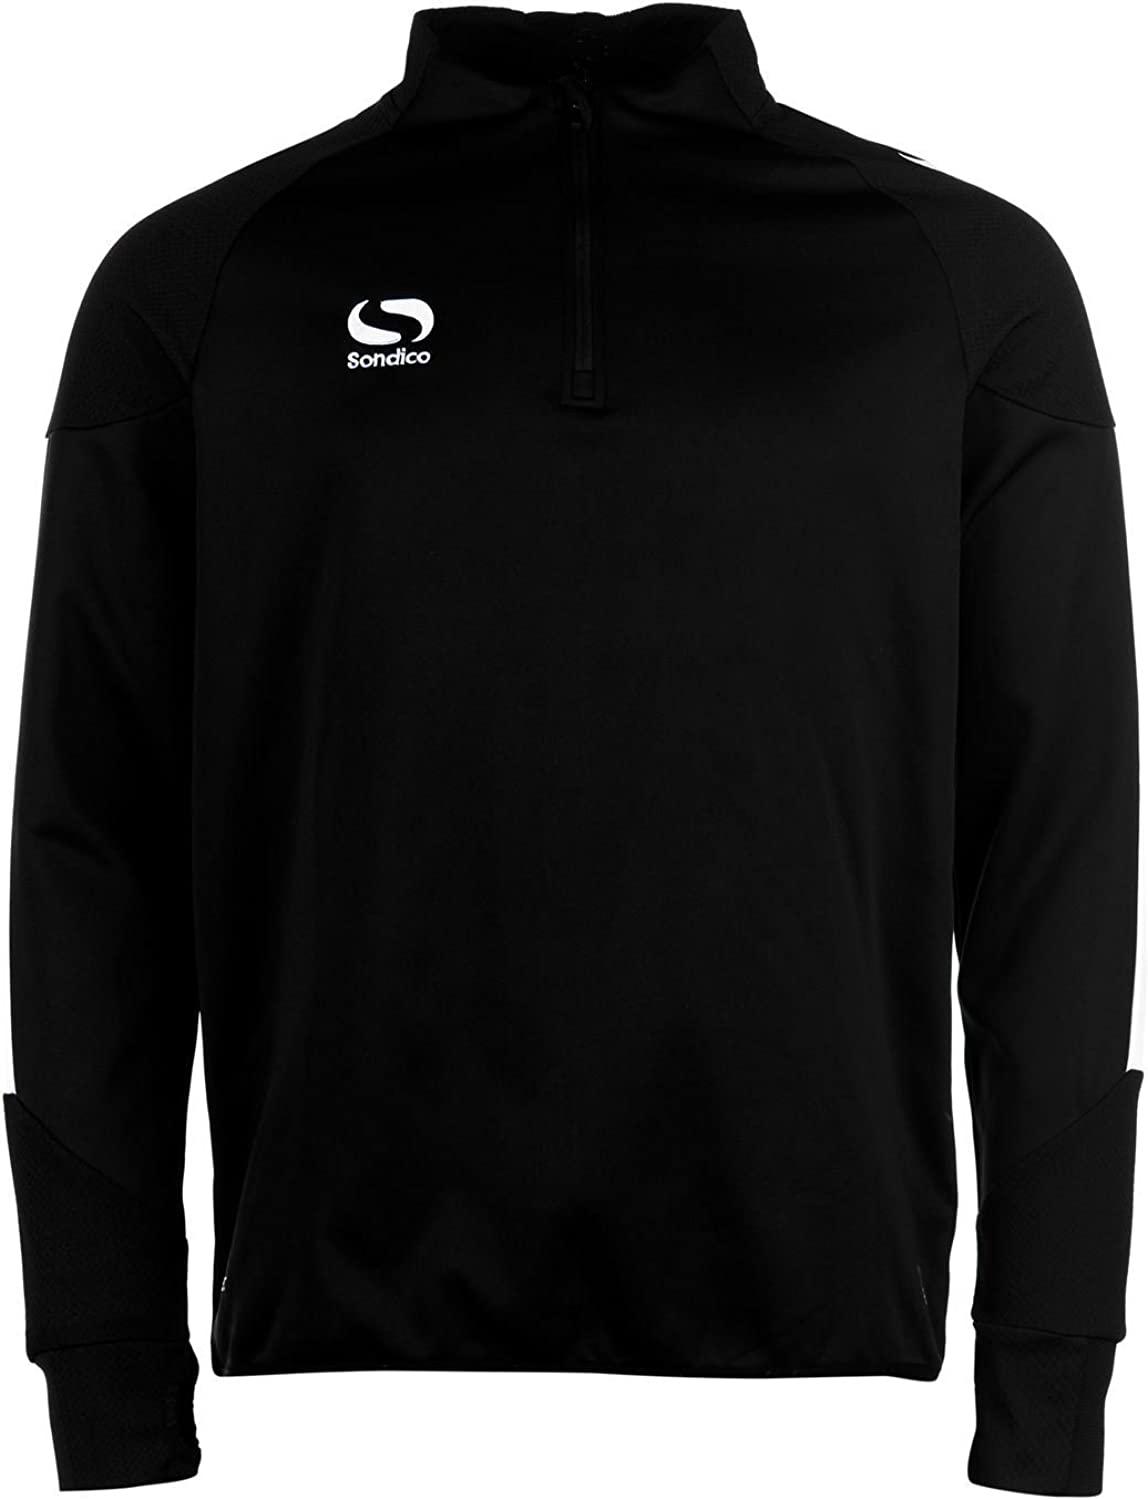 Sondico Evo 1 4 Zip Training Top Mens Black Football Soccer Sweater Sweatshirt